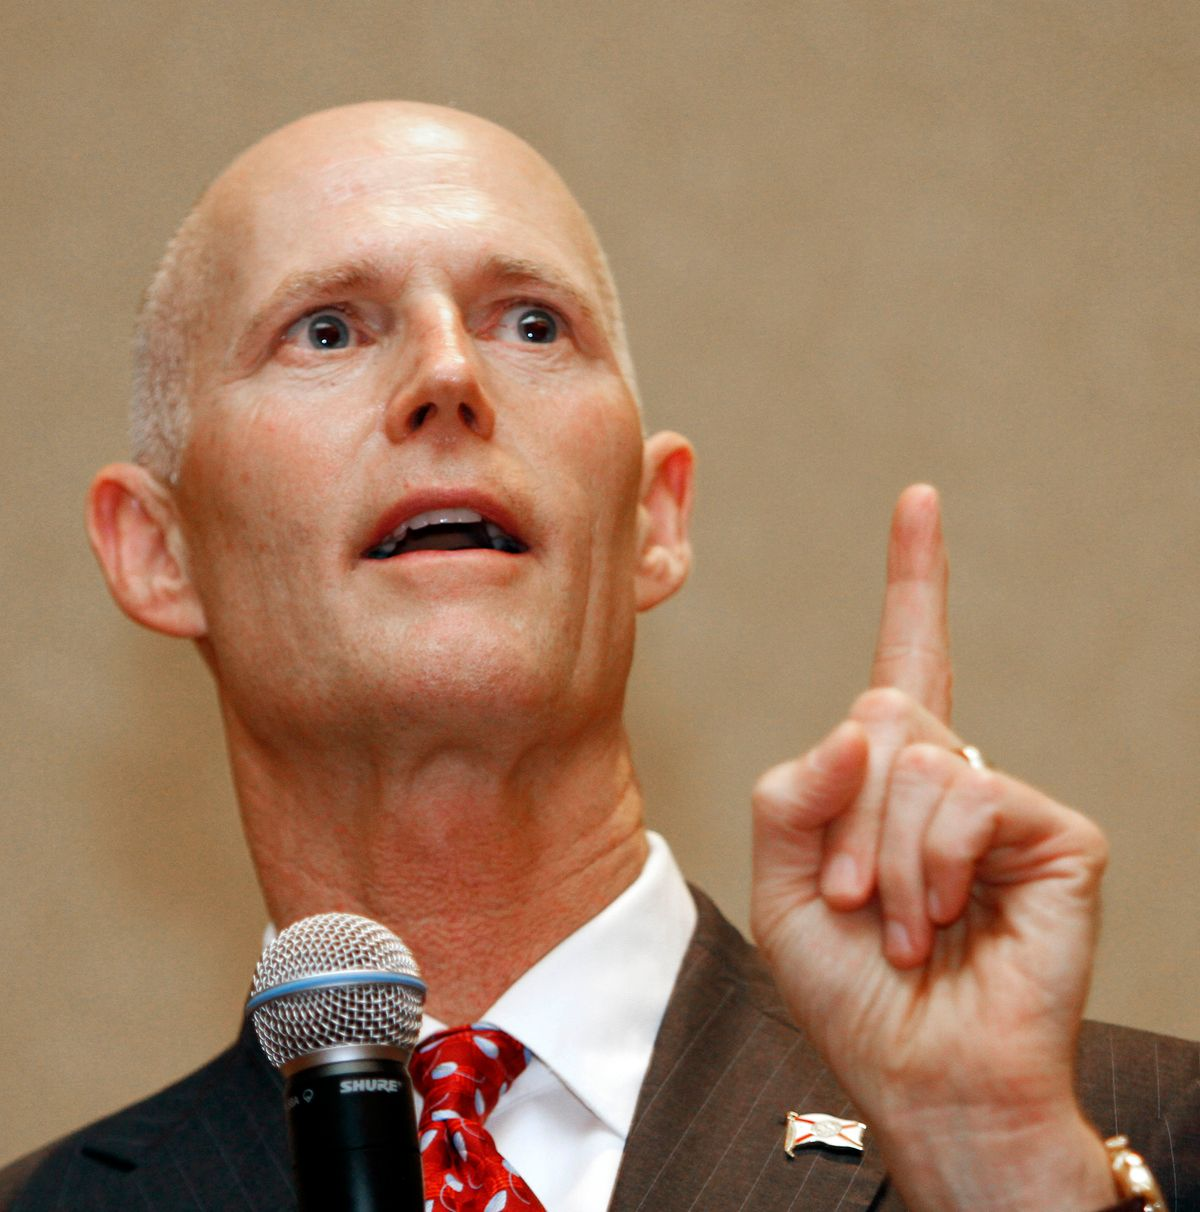 Gov. Rick Scott gestures during a  business conference in Hollywood, Fla., Friday, Feb. 4, 2011. (AP Photo/Alan Diaz)